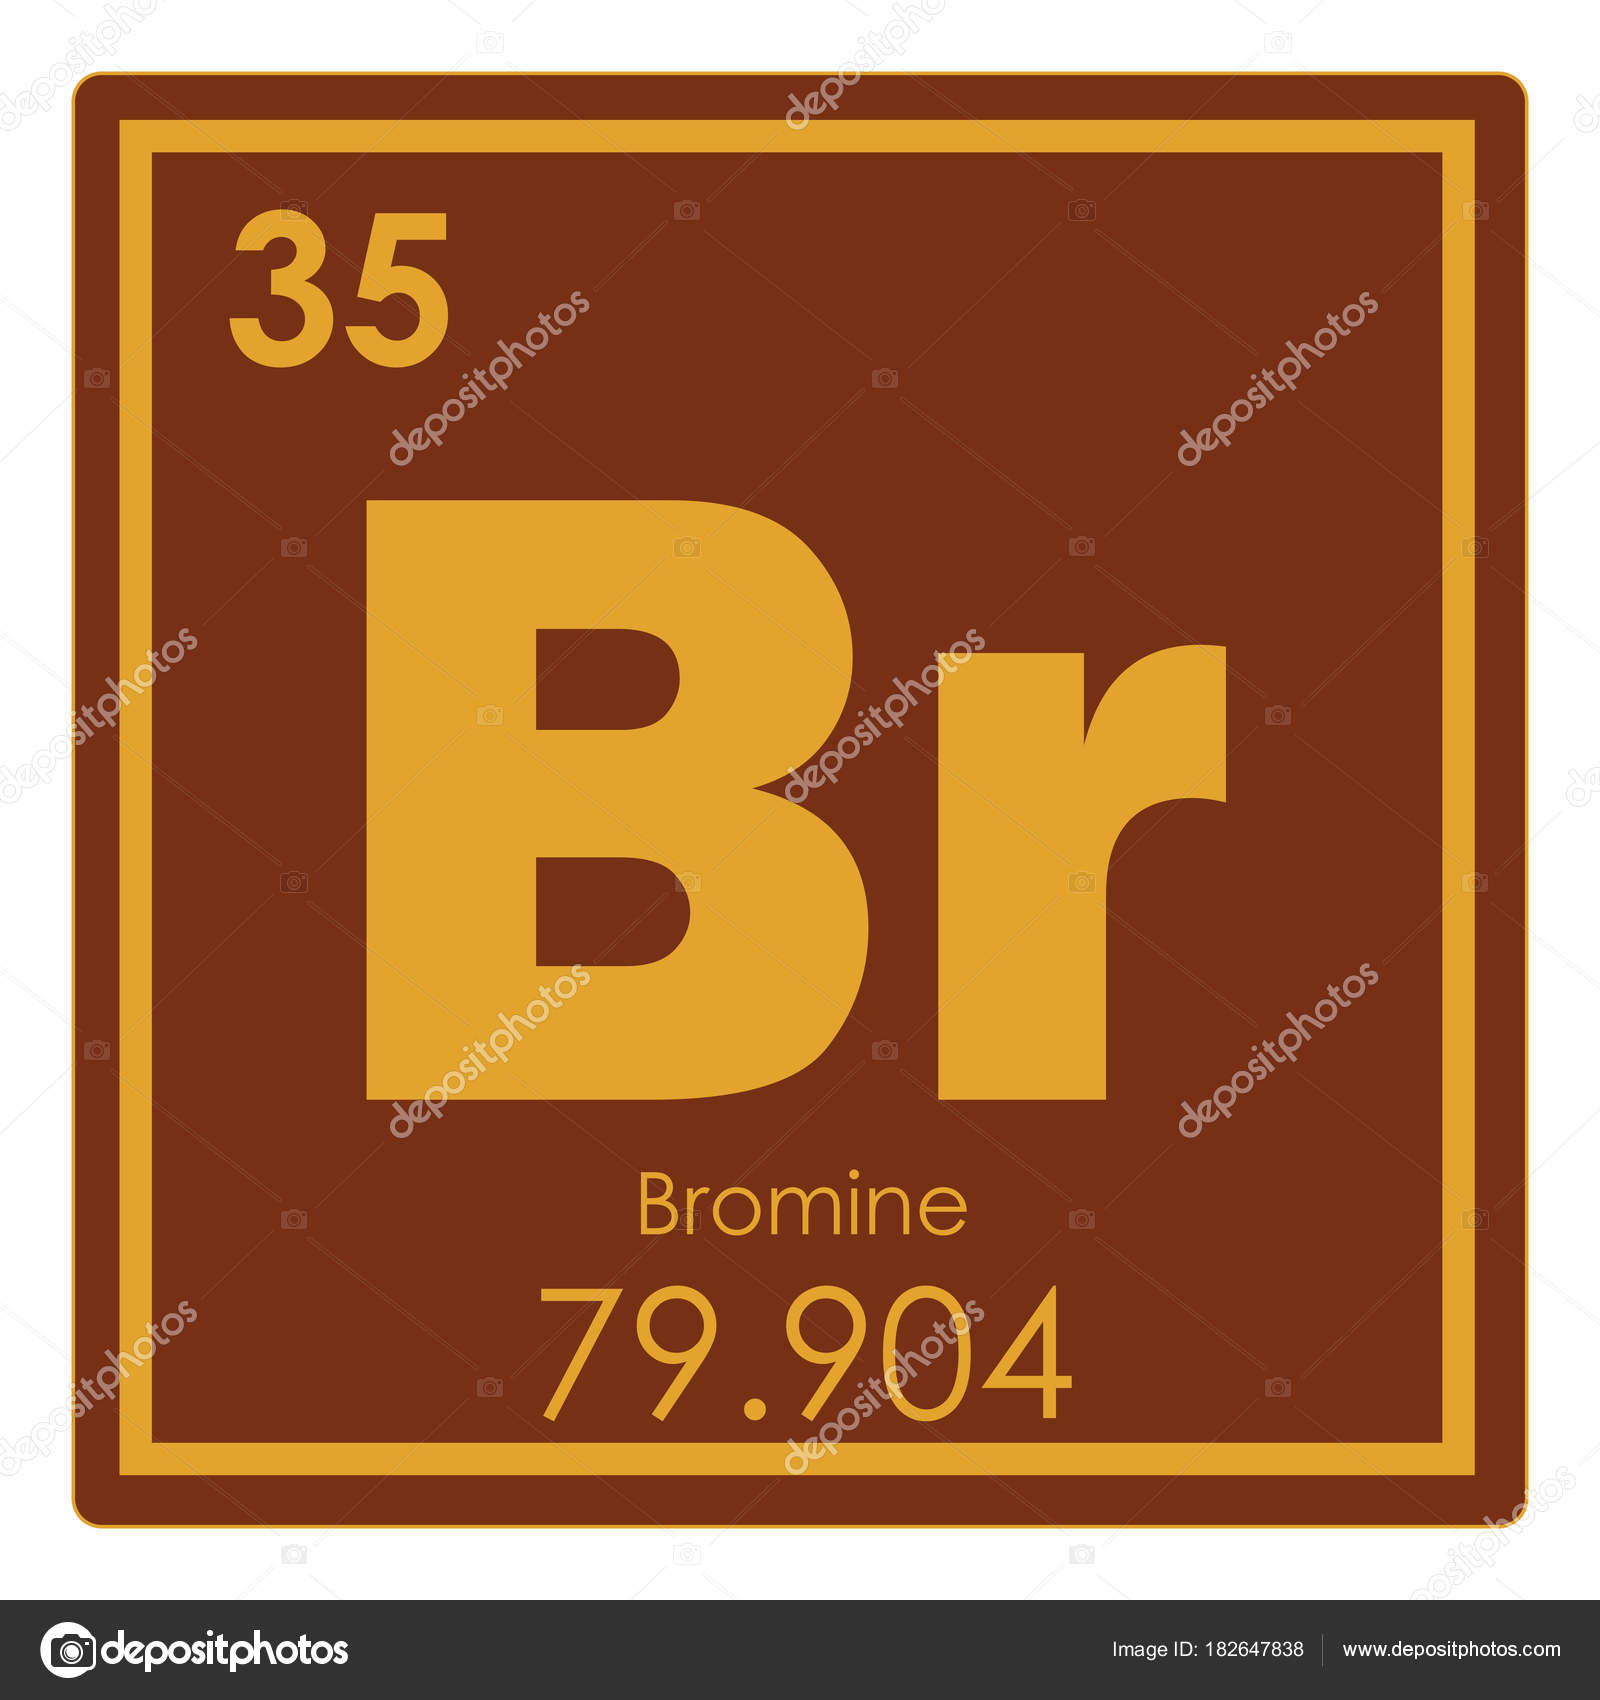 bromine chemical element periodic table science symbol photo by tony4urban - Bromine Periodic Table Atomic Number